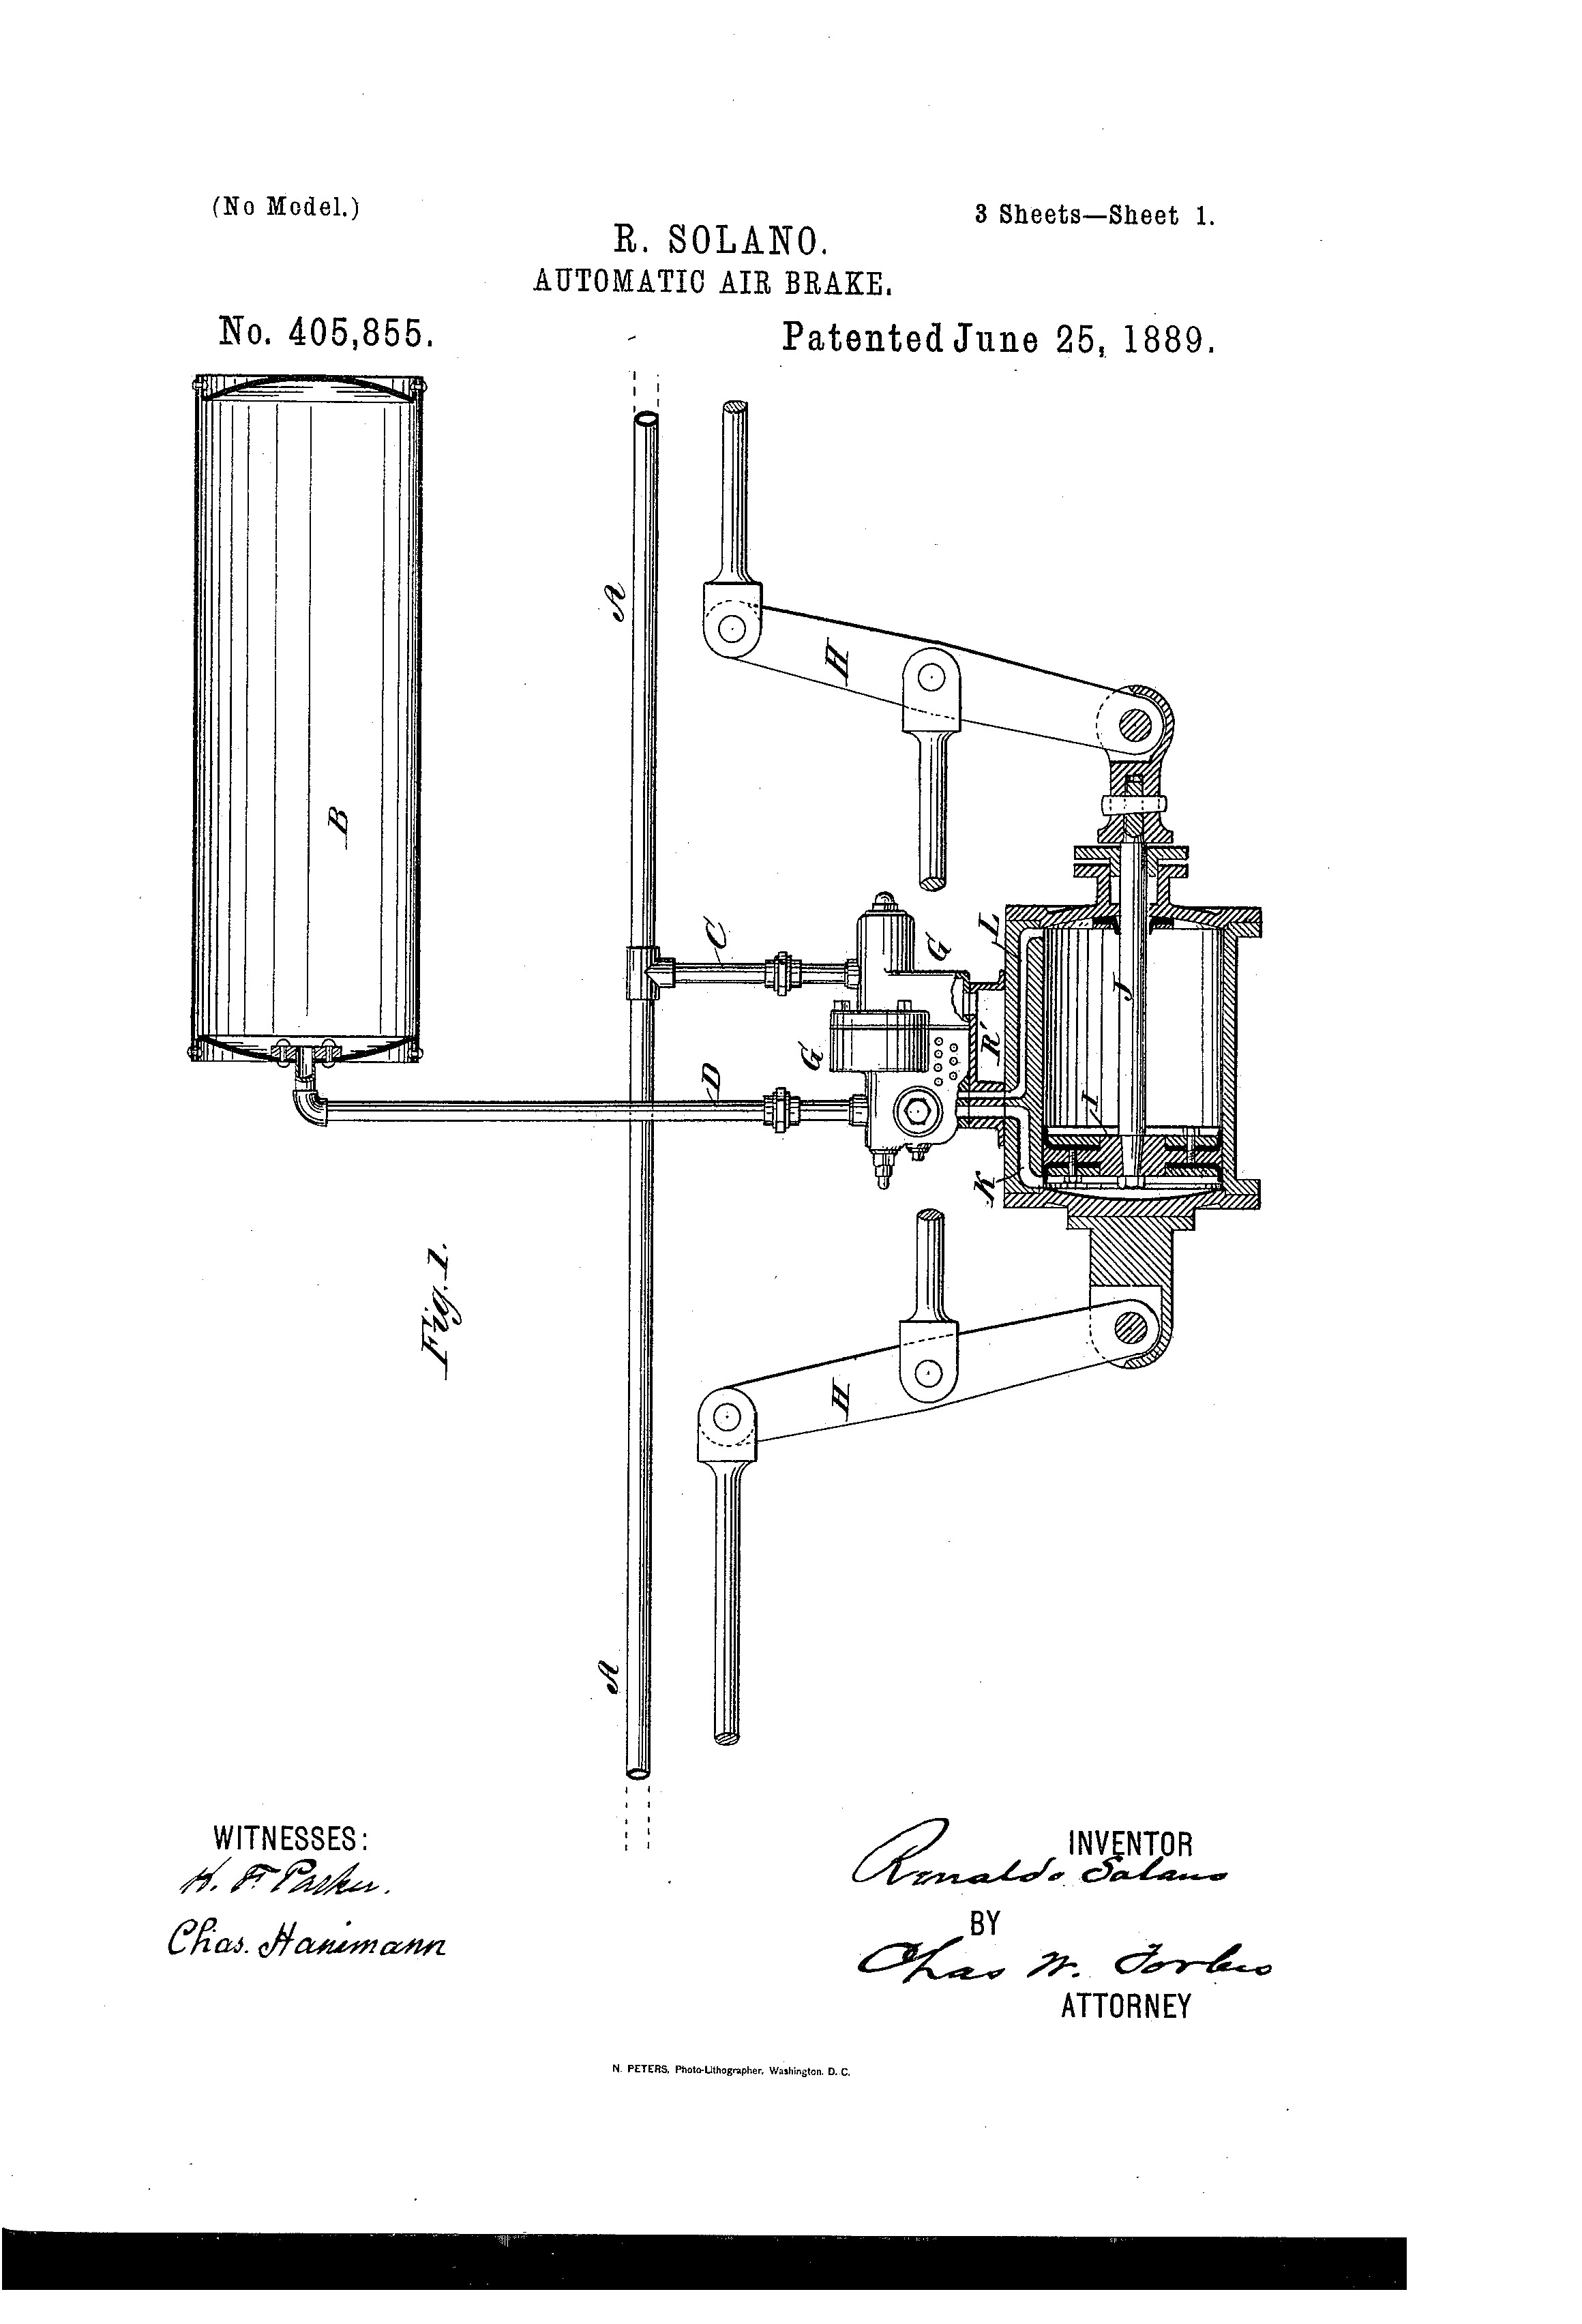 Air Brake Diagram Us A Automatic Air Brake Google Patents Of Air Brake Diagram